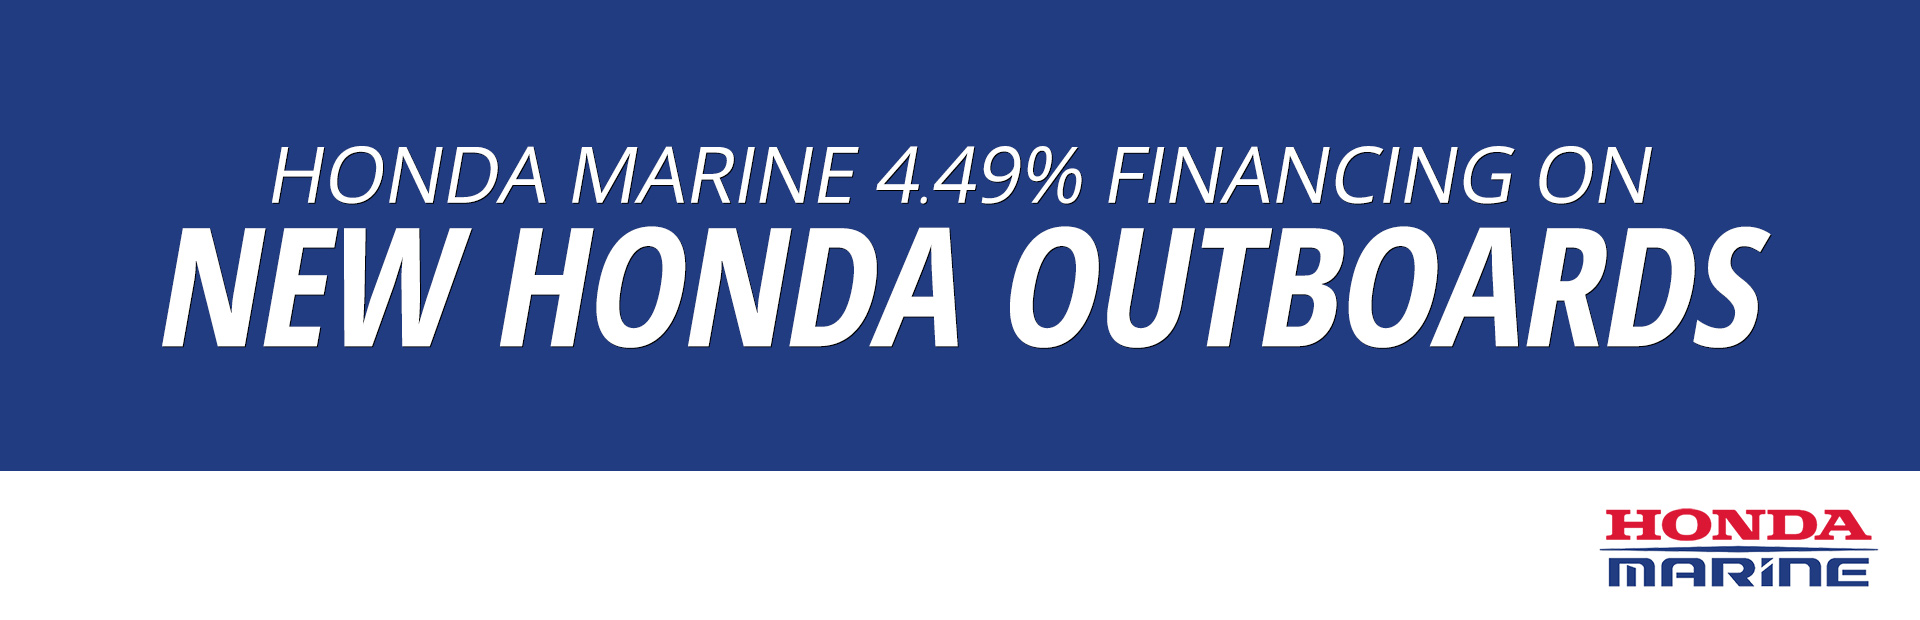 Honda Marine: Honda Marine 4.49% Financing on New Honda Outboard